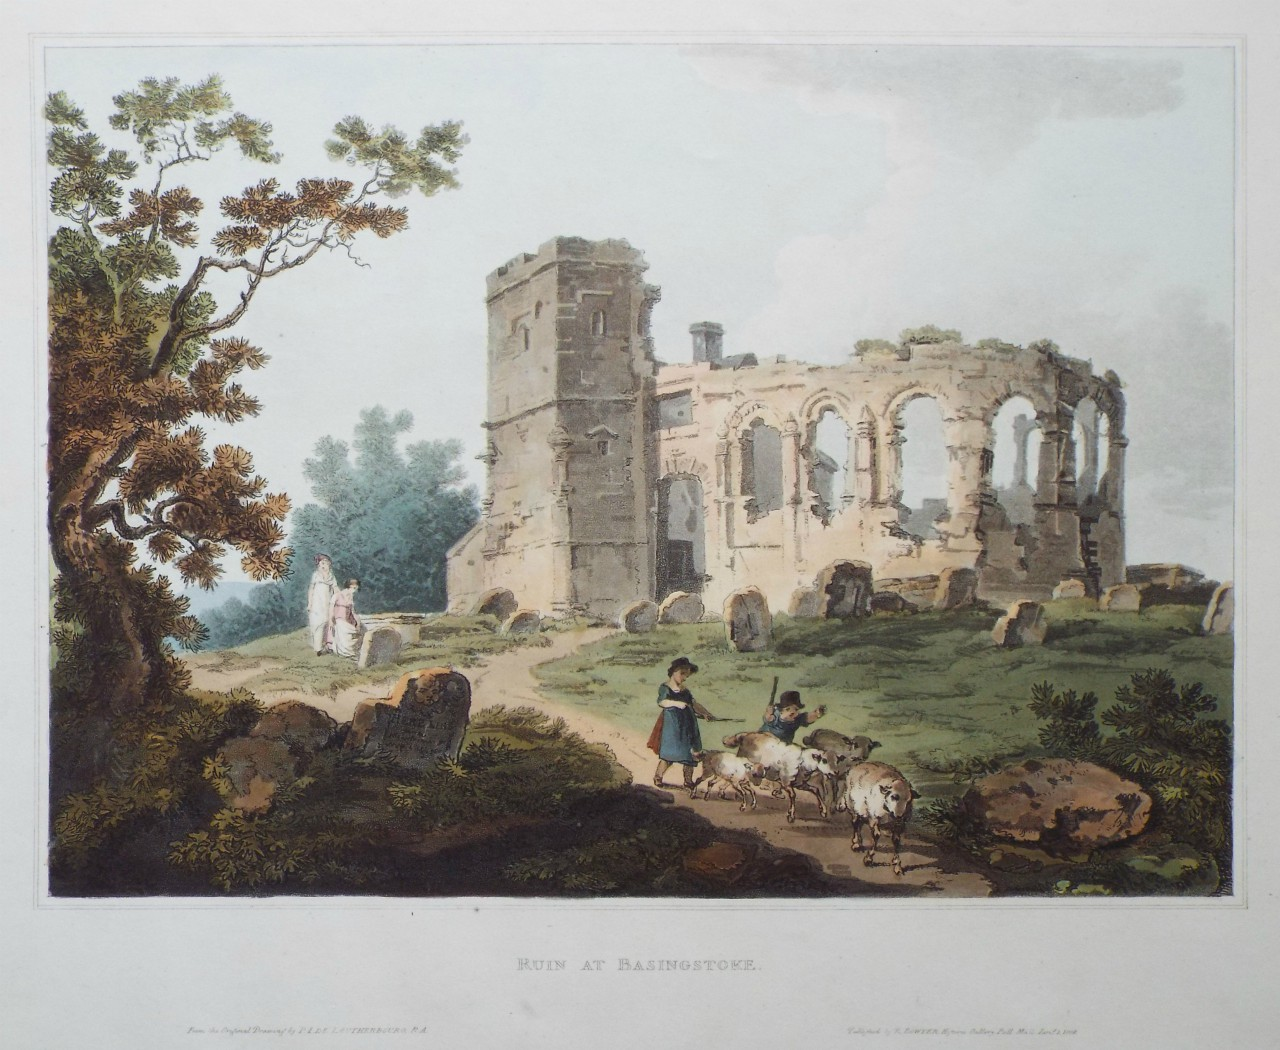 Aquatint - Ruin at Basingstoke. - Pickett